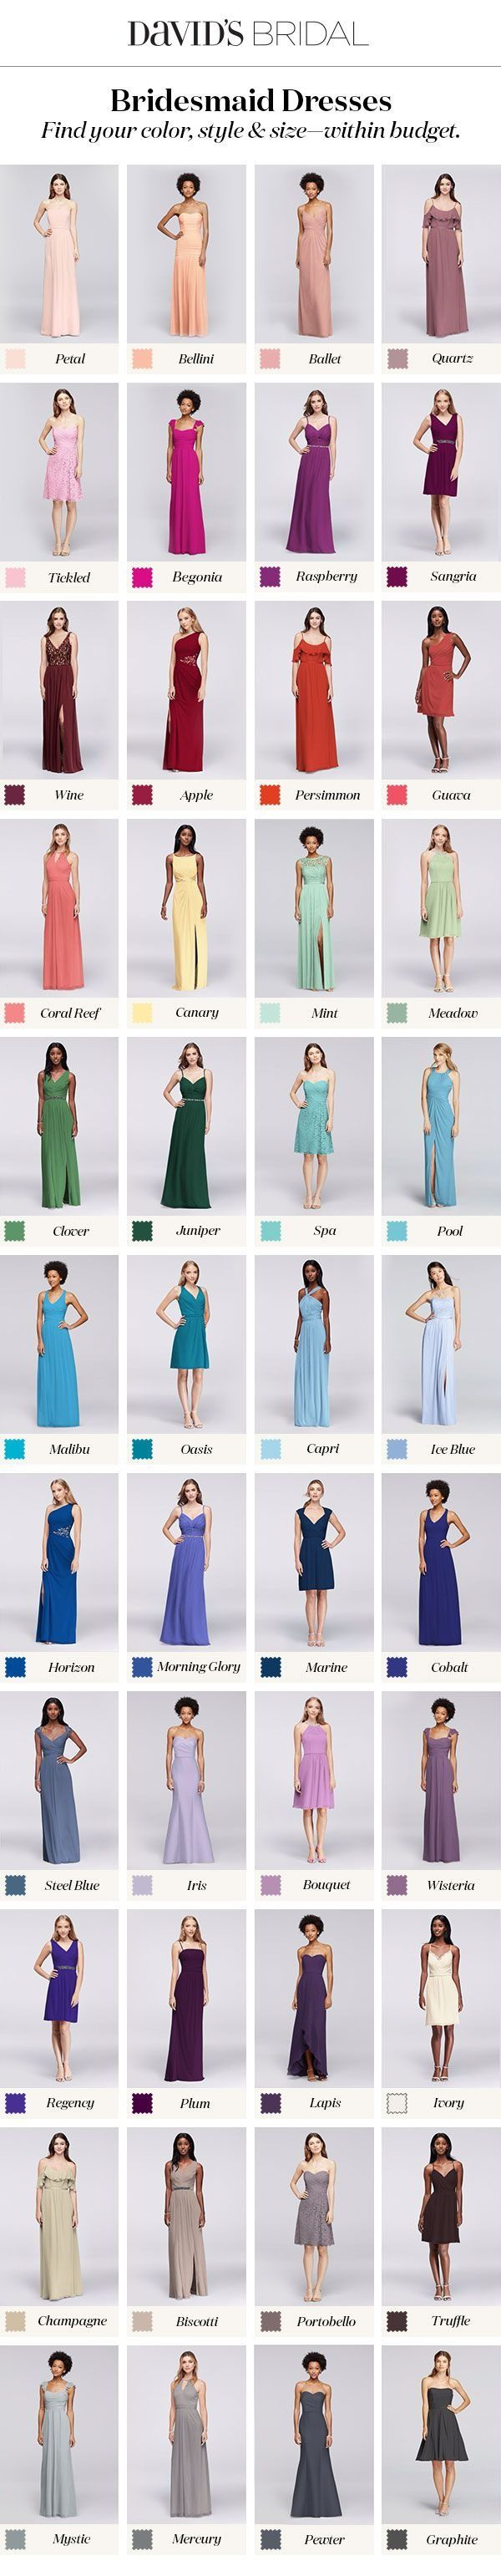 Best 25 davids bridal bridesmaid dresses ideas on pinterest bridesmaid dresses in your color with styles to fit every friend every budget find ombrellifo Image collections